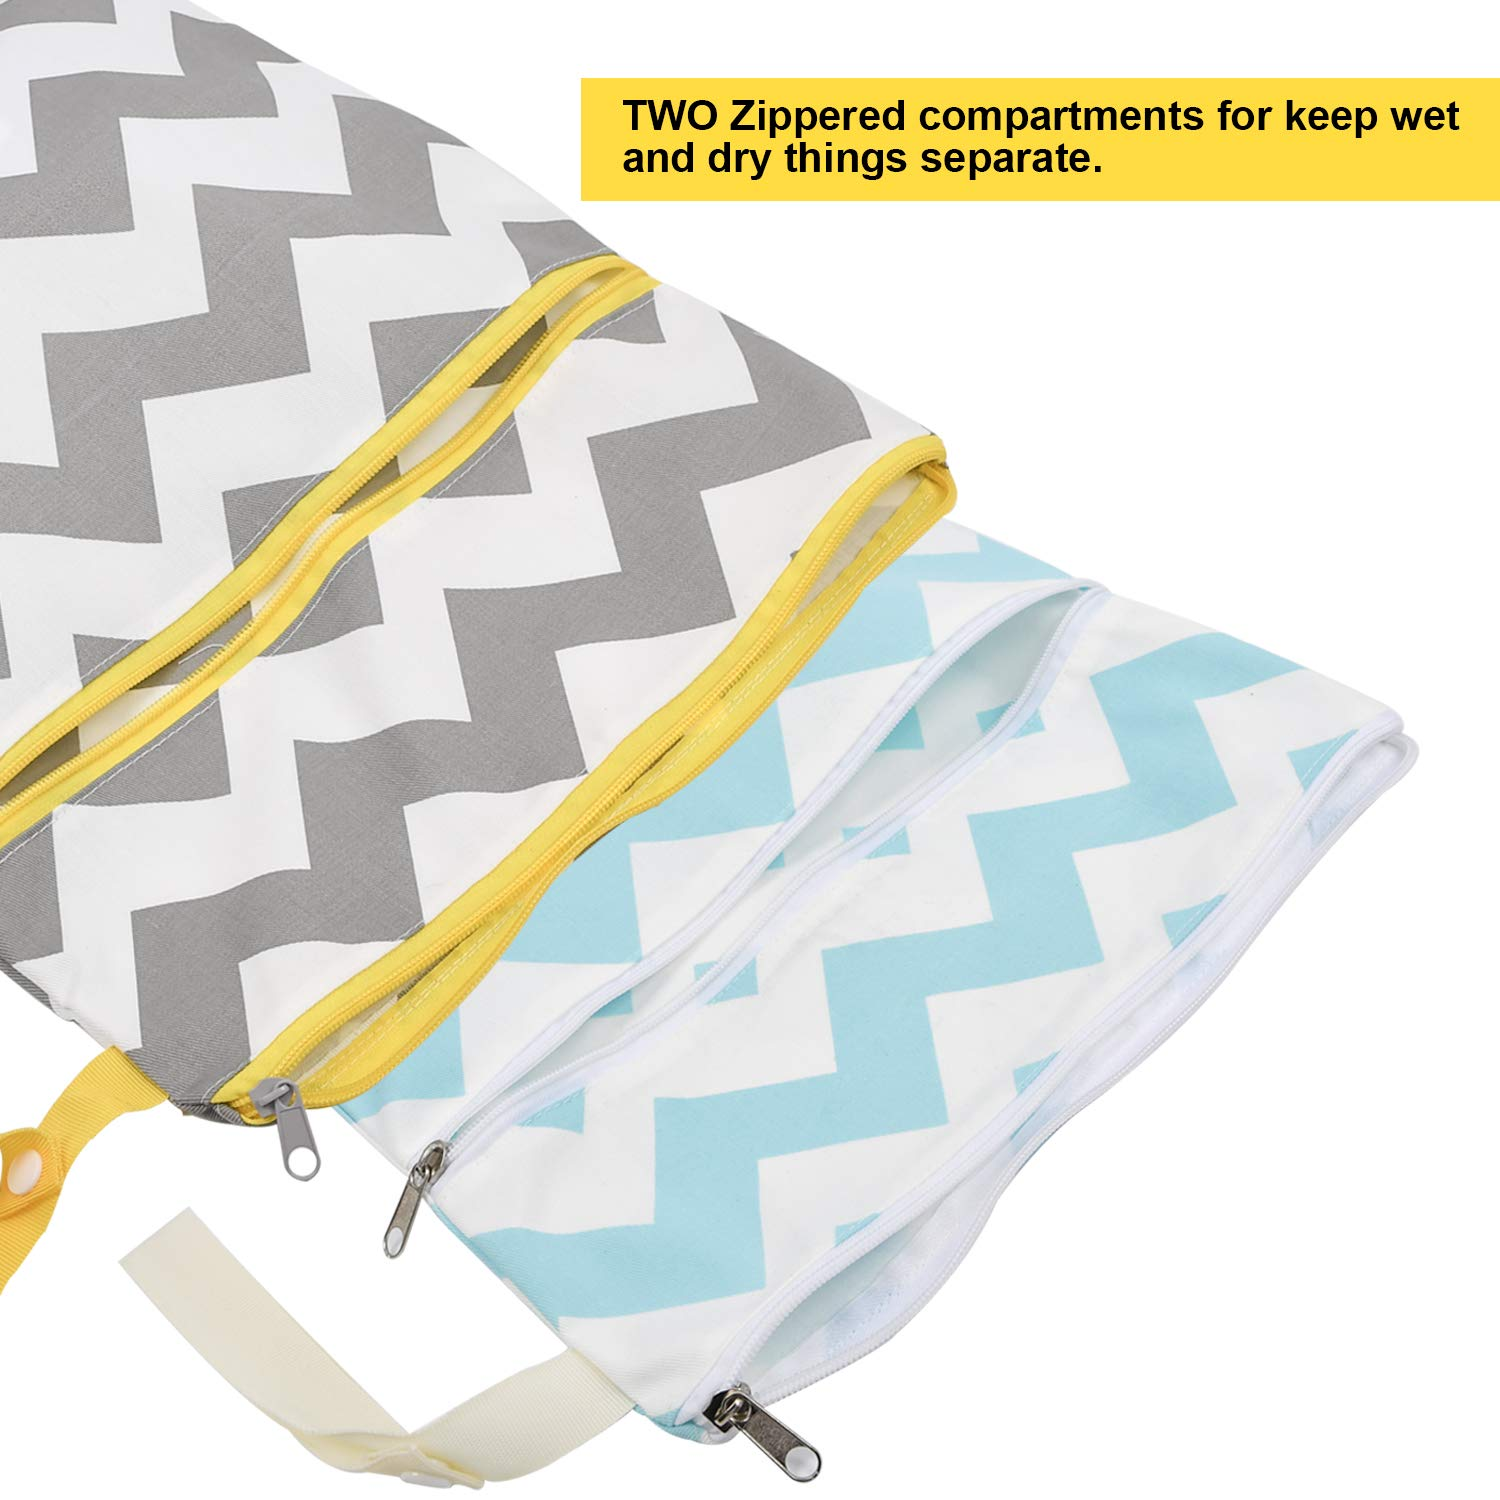 Daycare Beach Gym Bag for Swimsuit or Wet Clothes Waterproof Pool Yoga Washable 2pcs Cloth Diaper Wet//Dry Bags Reusable,Travel 2 Zippered Pockets AILELAN Wet Bags Soiled Baby Items